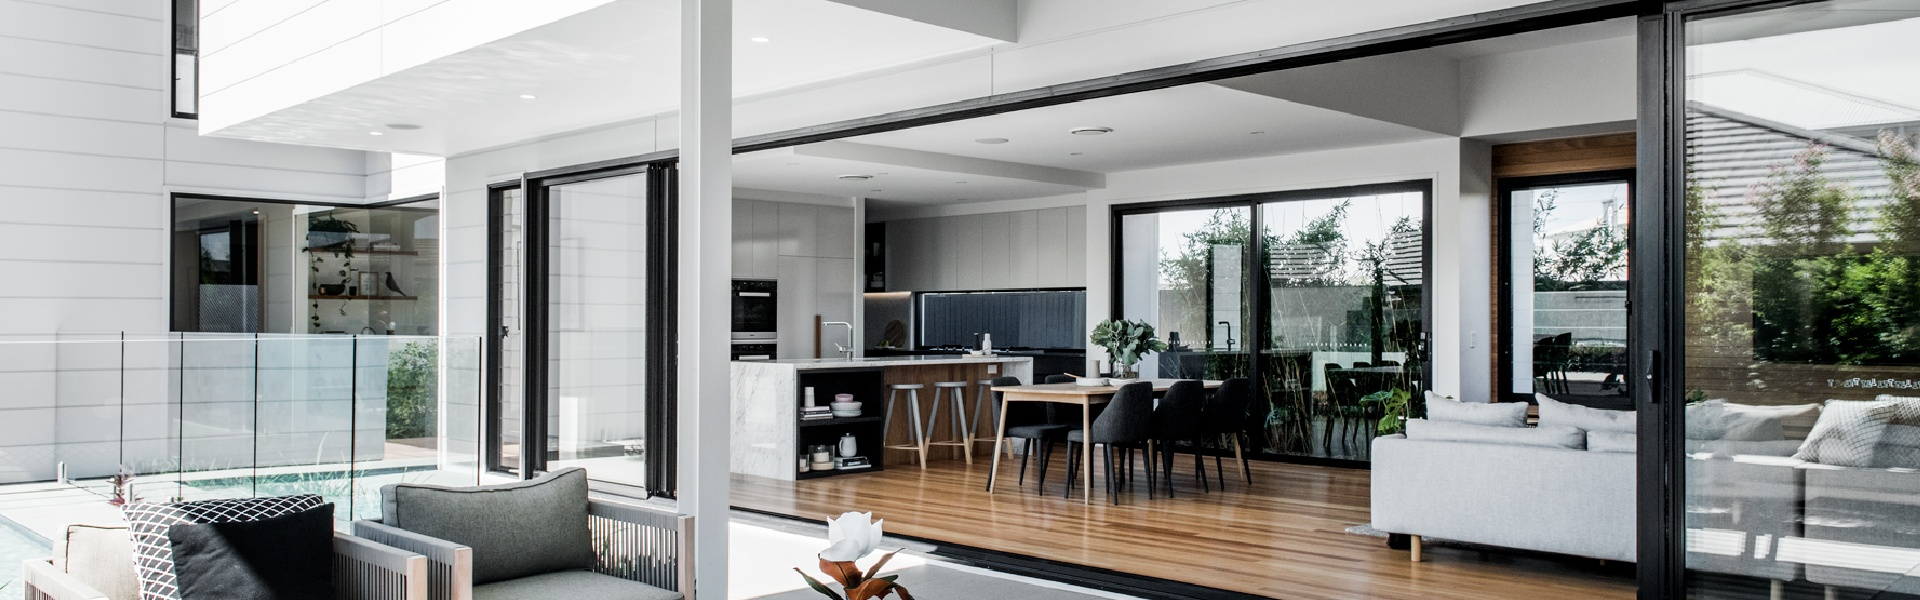 Kalka - Luxury Home Renovations Brisbane